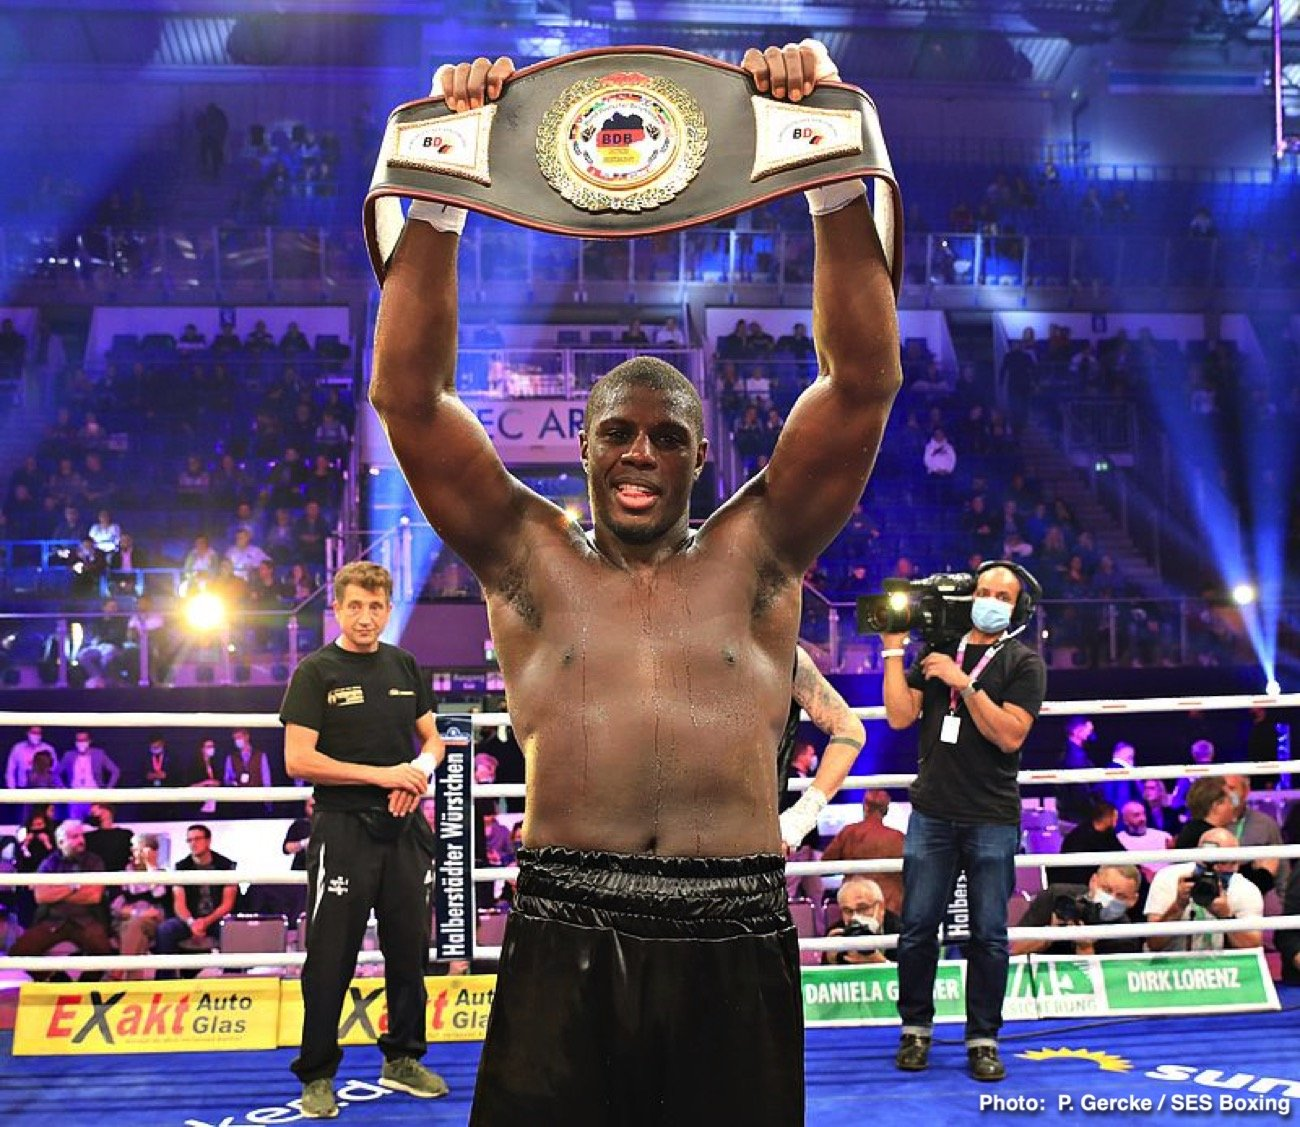 Peter Kadiru, Robin Krasniqi - Robin Krasniqi (51-6, 19 KOs) upset WBA interim light heavyweight champion Dominic Bösel  (30-2, 12 KOs) via spectacular knockout in the 3rd round in the GETEC ARENA in Magdeburg, Germany yesterday. 2000 fans, under strictly implemented Corona rules, saw a highly dramatic fight, which thrilled boxing fans and TV viewers. In his third try, Krasniqi finally fulfilled his world title dream after losing to Nathan Cleverly and Jürgen Brähmer in his first two attempts and knocked out Bösel cold at 2:25 of the third round.